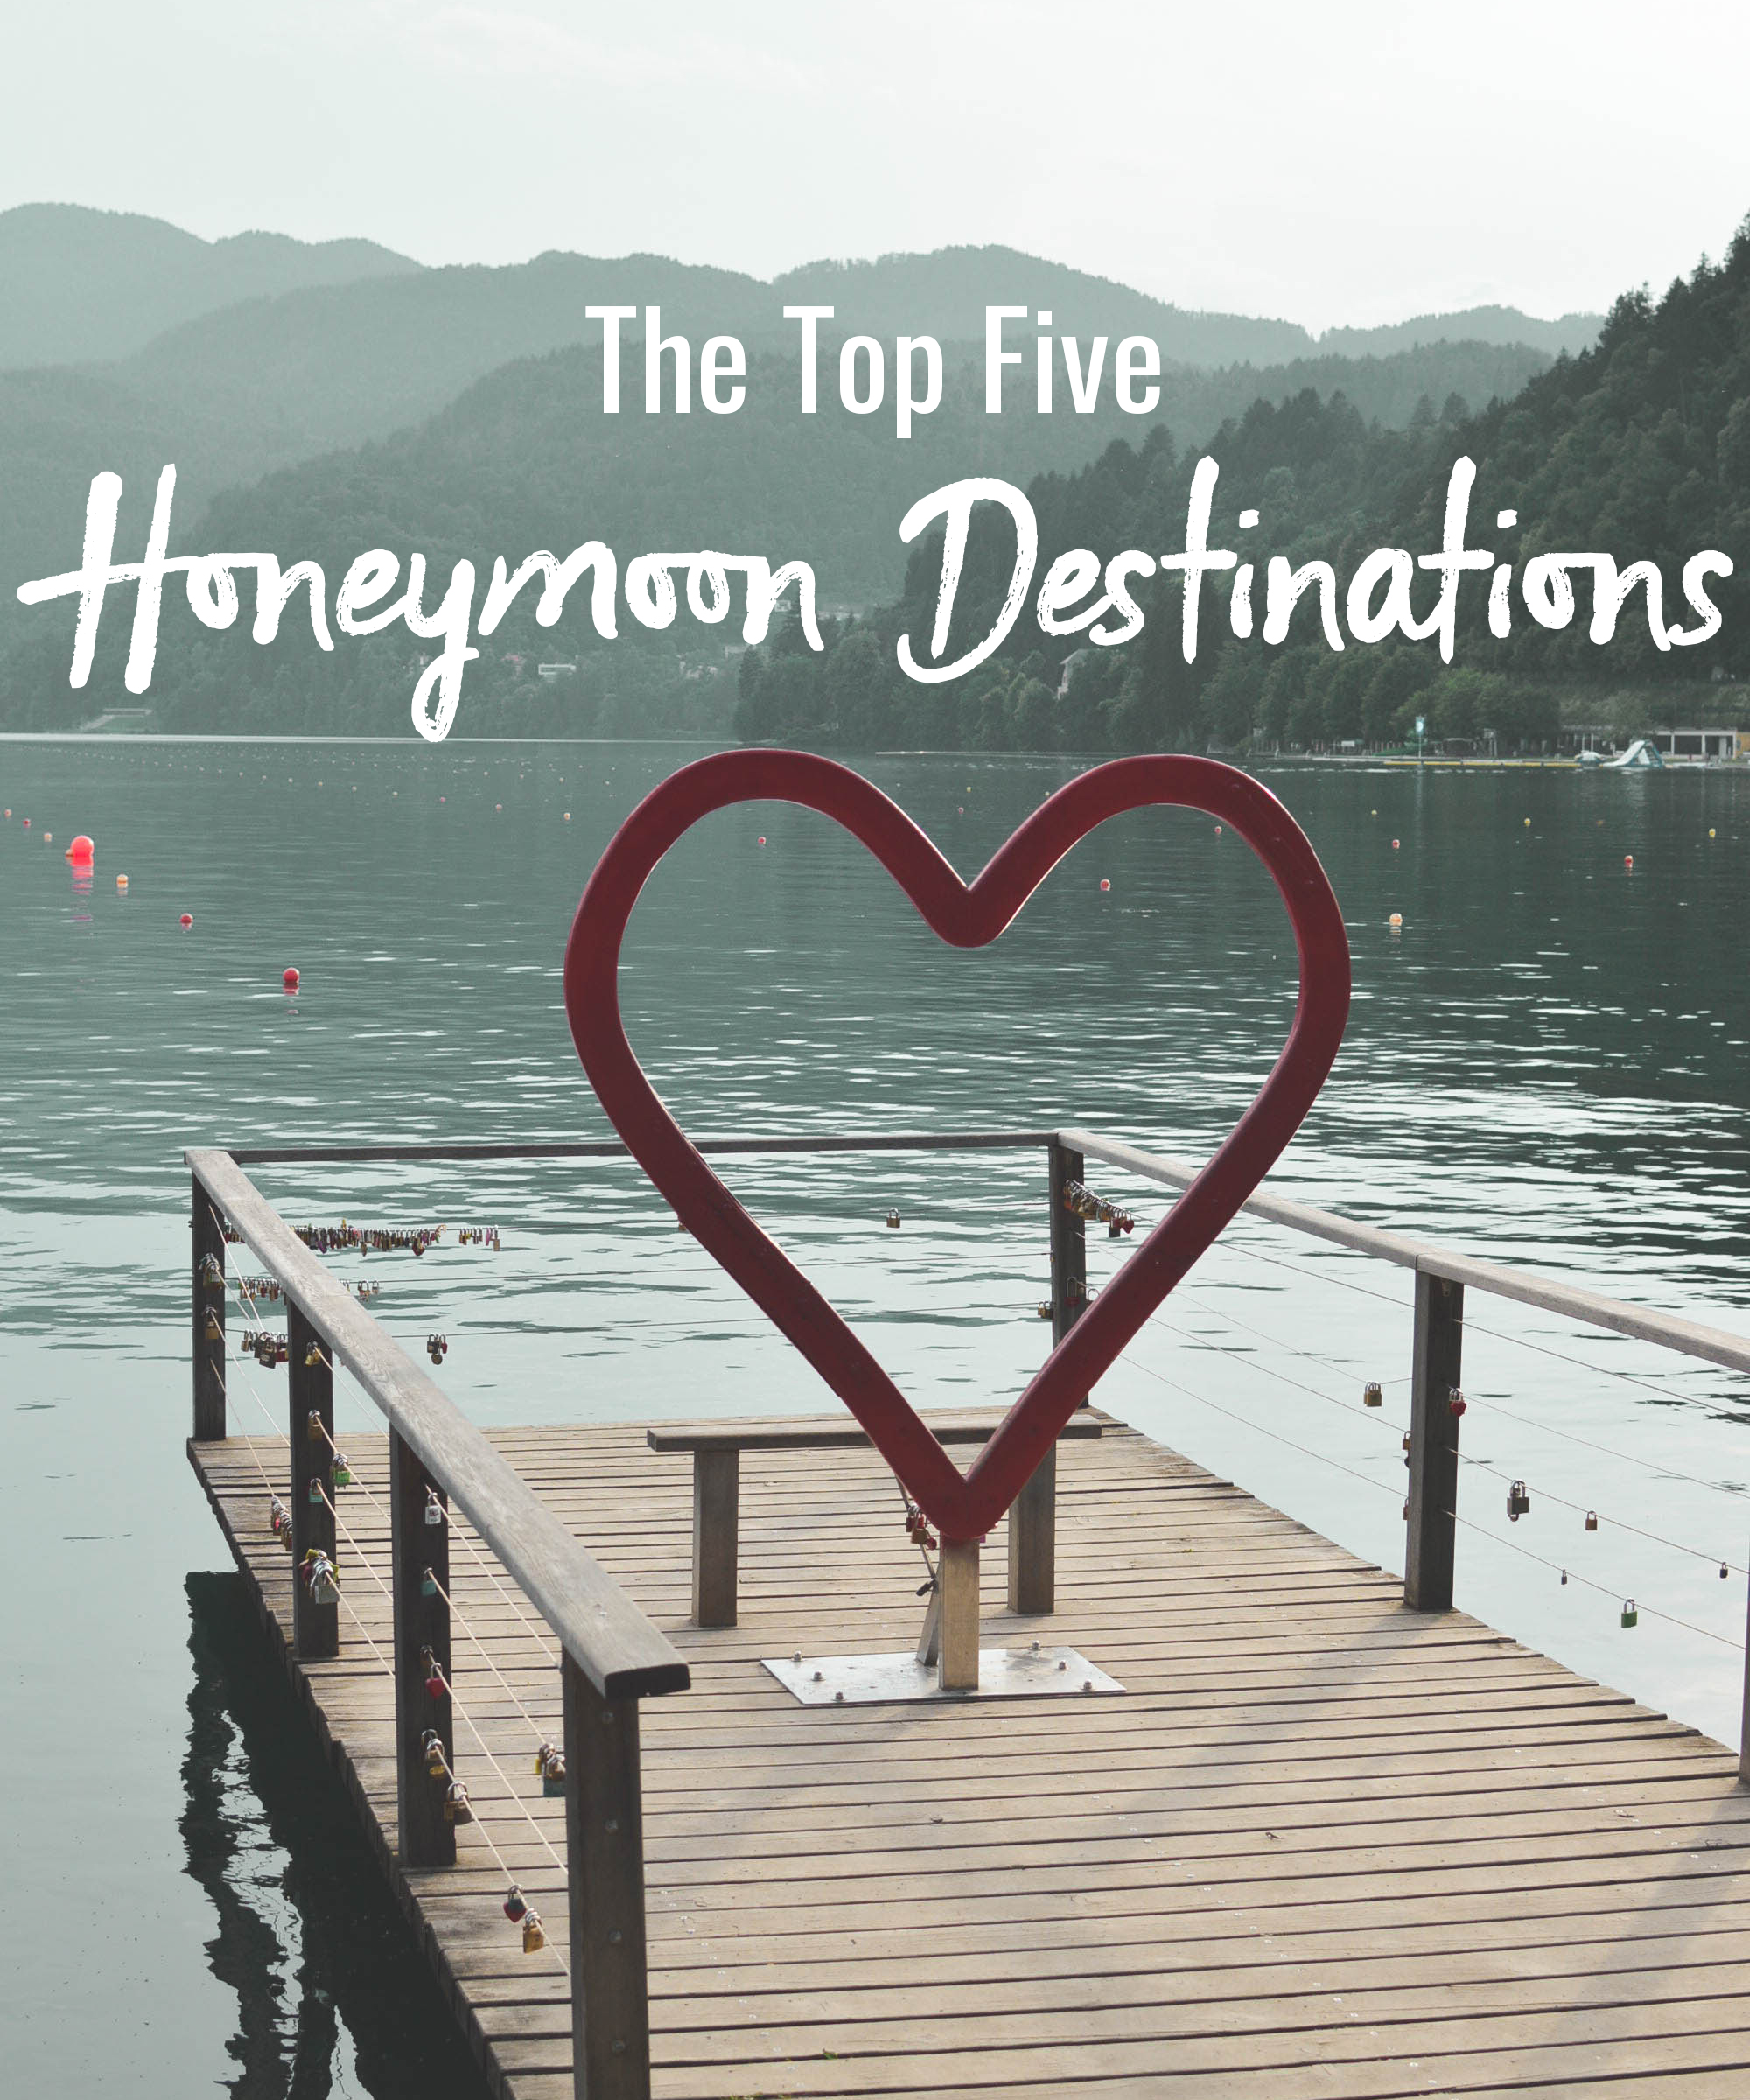 Top five honeymoon destinations